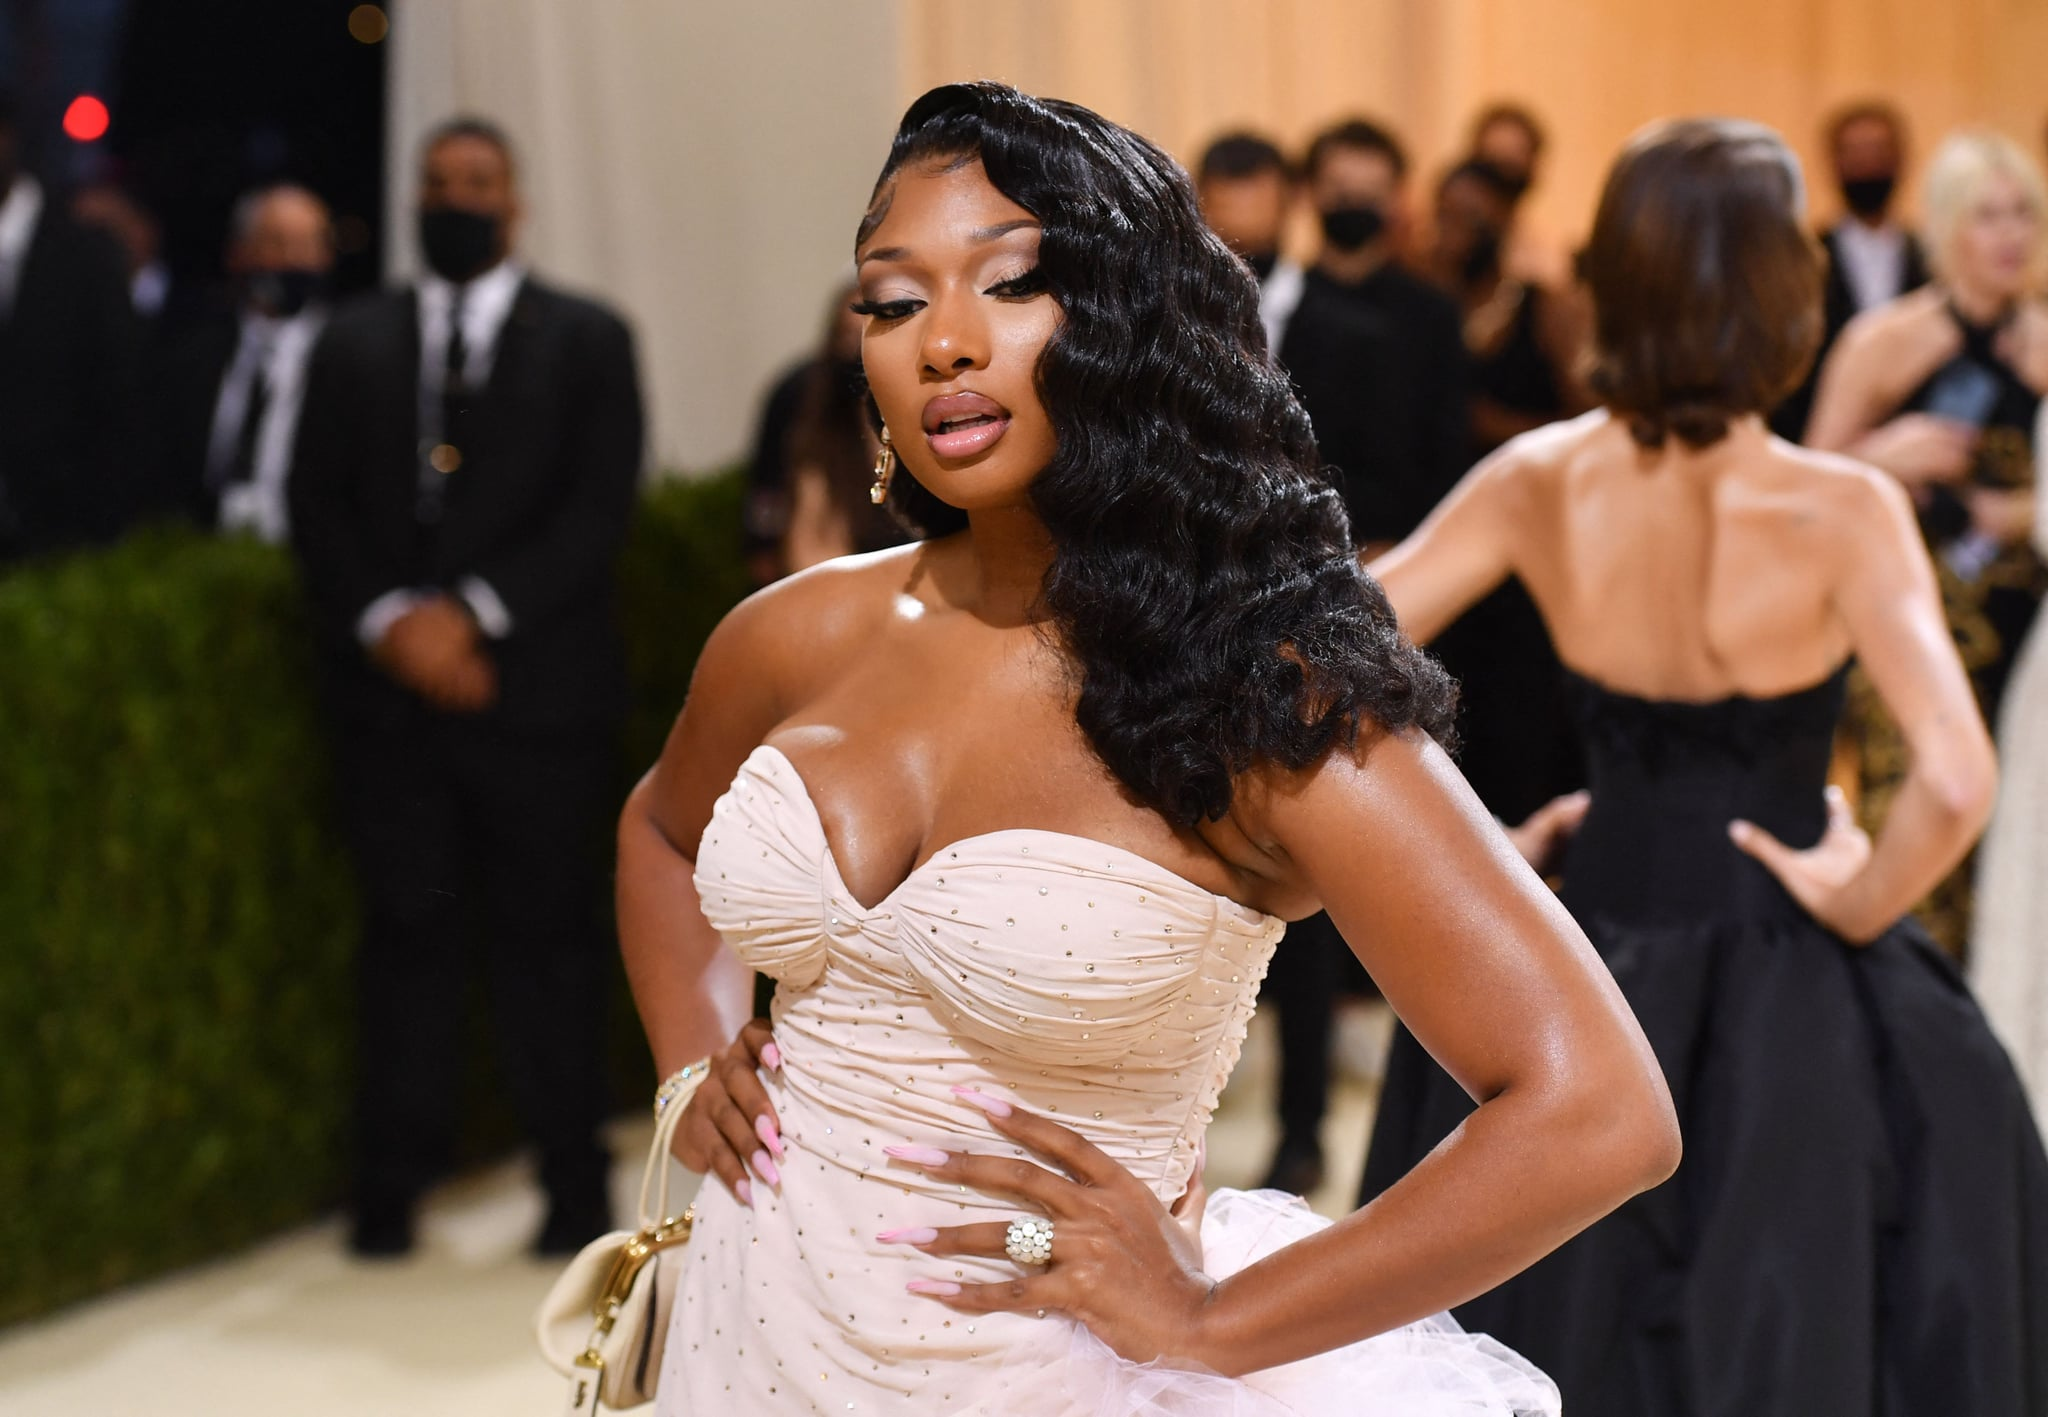 US rapper Megan Thee Stallion arrives for the 2021 Met Gala at the Metropolitan Museum of Art on September 13, 2021 in New York. - This year's Met Gala has a distinctively youthful imprint, hosted by singer Billie Eilish, actor Timothee Chalamet, poet Amanda Gorman and tennis star Naomi Osaka, none of them older than 25. The 2021 theme is